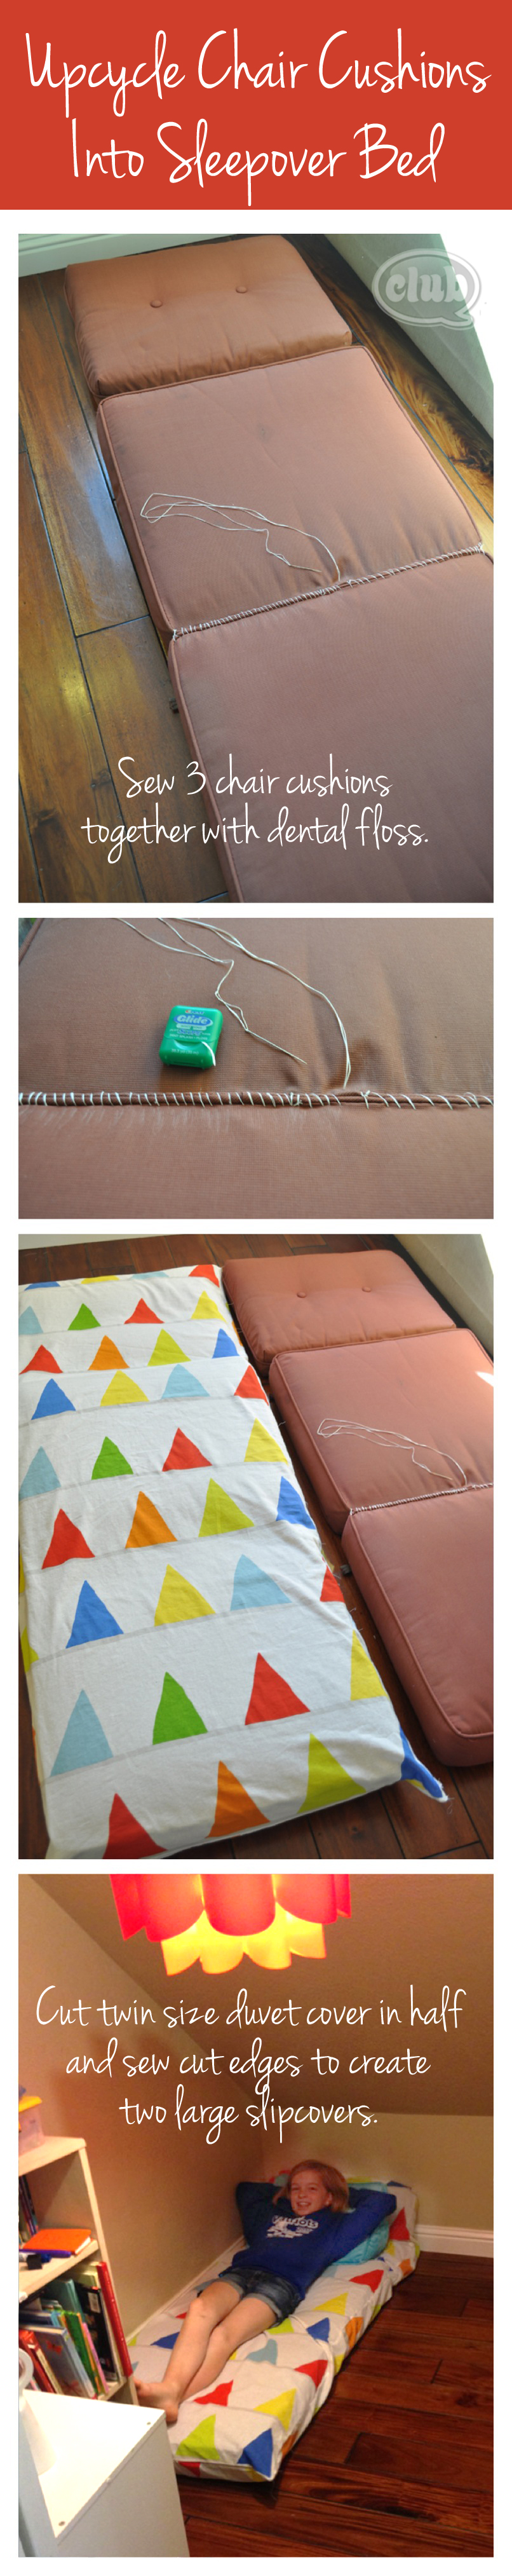 Reinventing Outdoor Cushions into Sleepover Mats